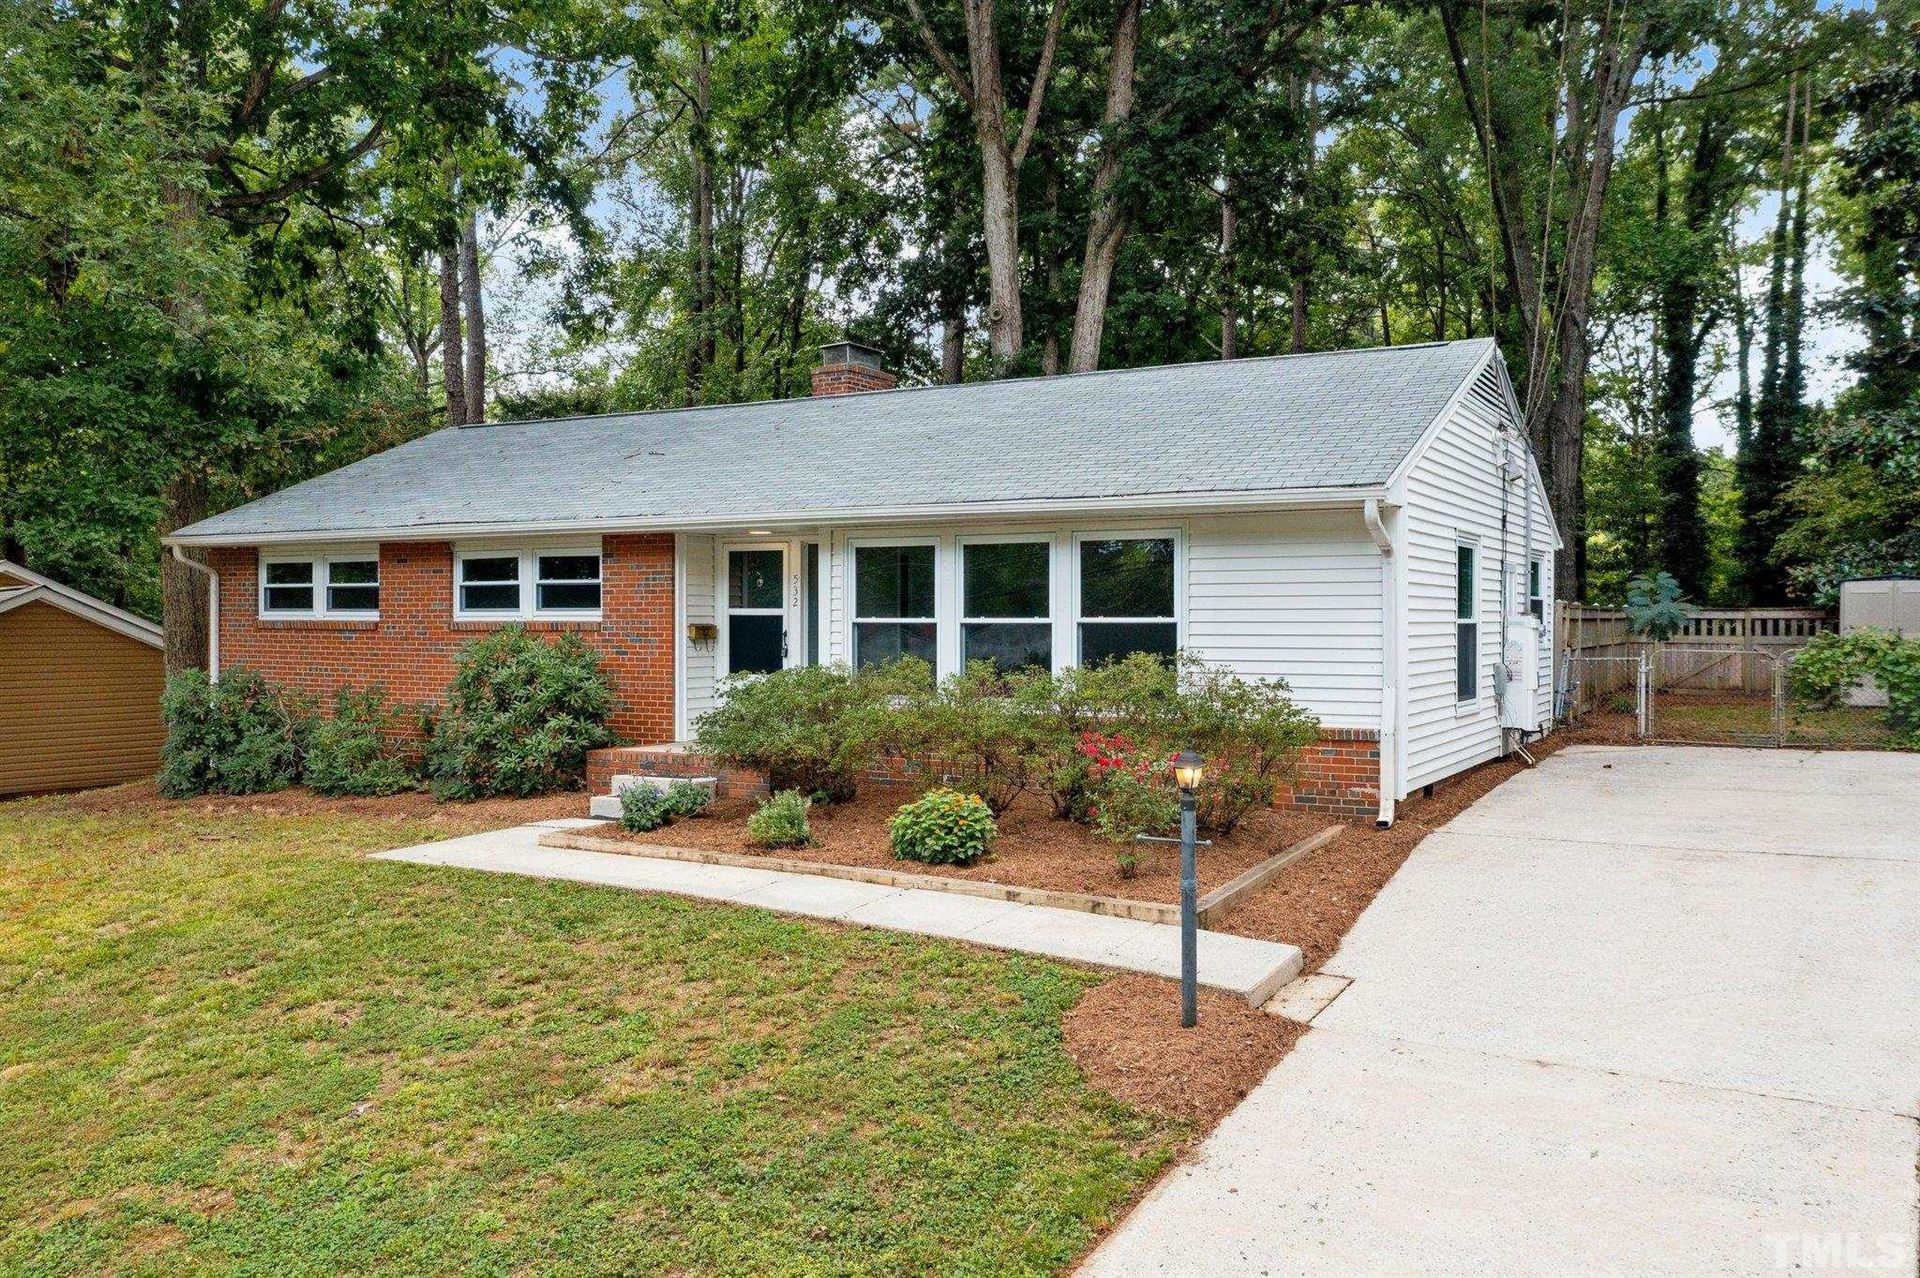 Photo of 532 Barksdale Drive, Raleigh, NC 27604 (MLS # 2407554)